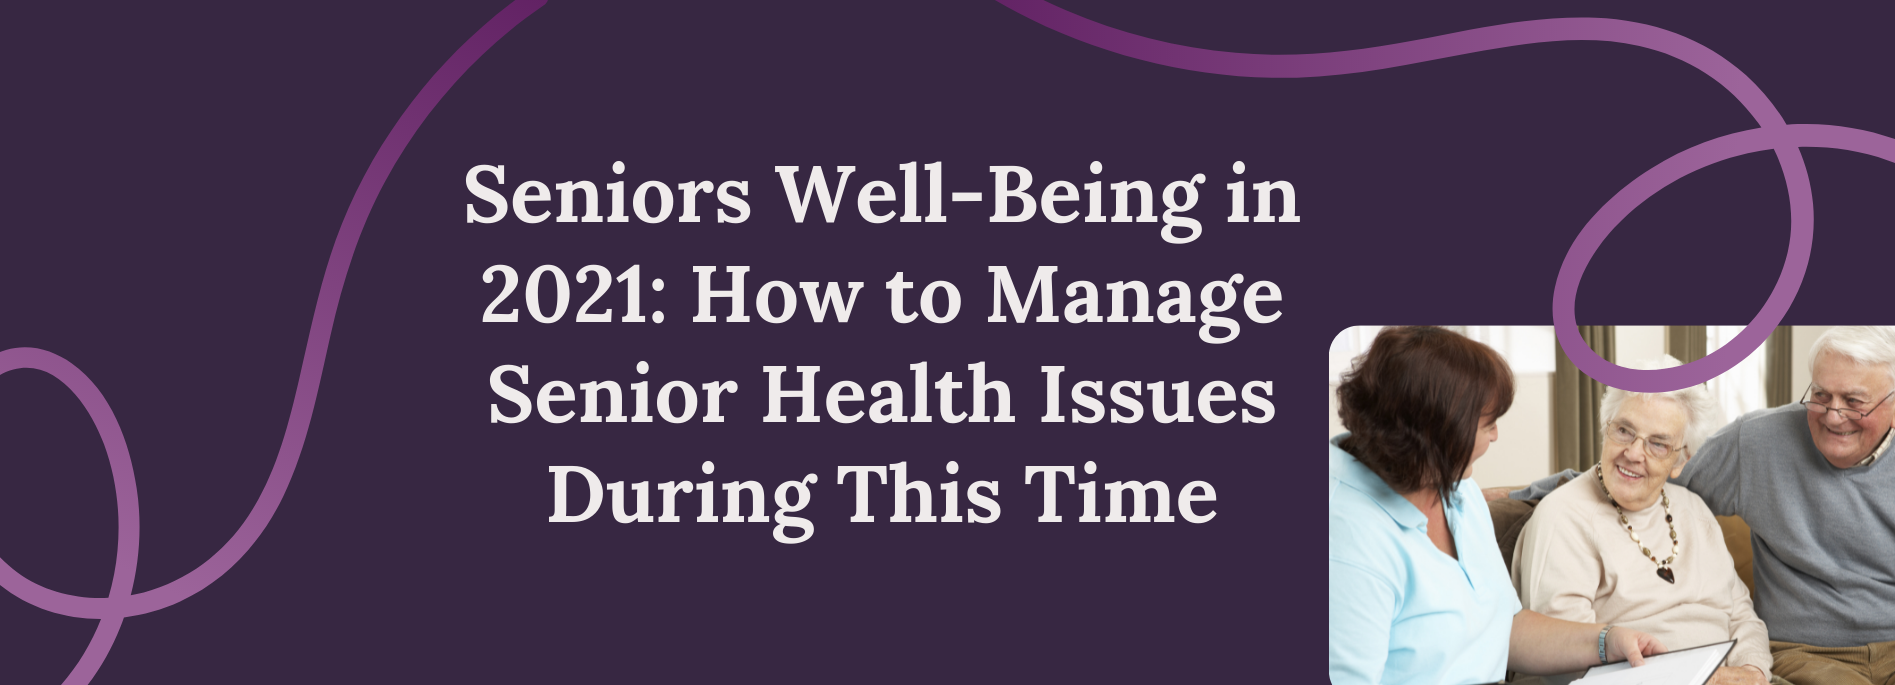 Seniors Well-Being in 2021: How to Manage Senior Health Issues During This Time